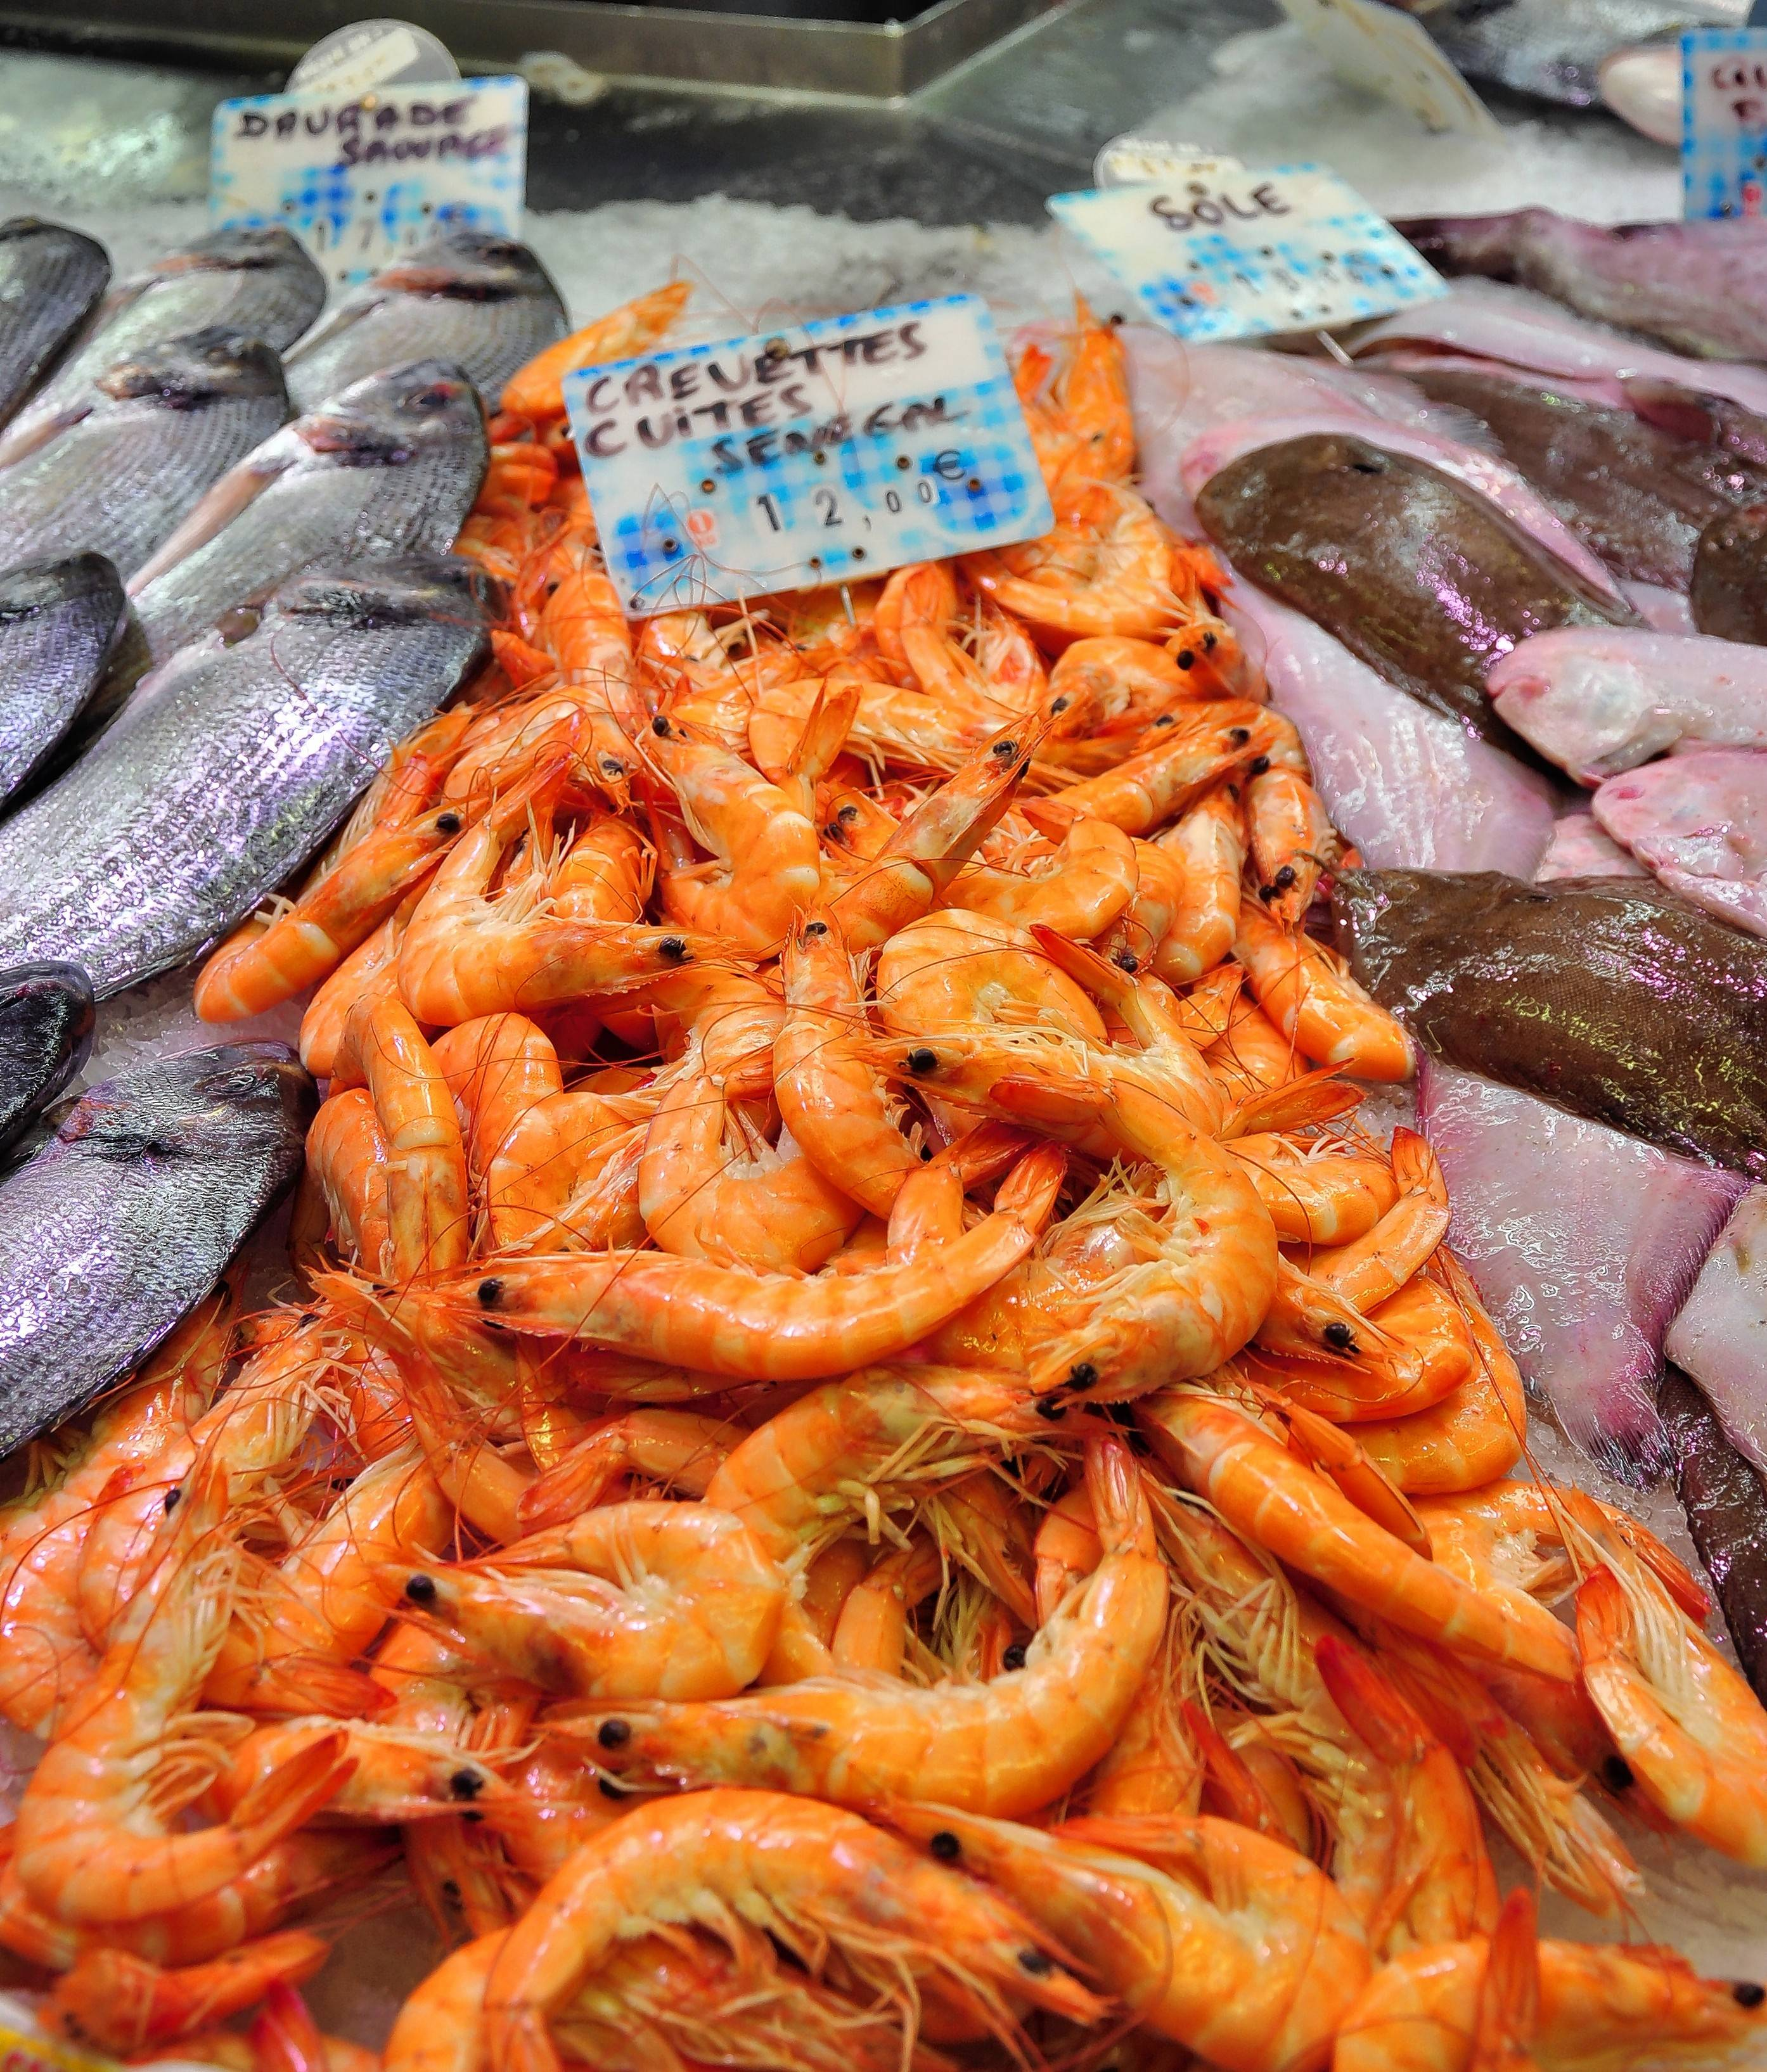 Shrimp is one of the seafood varieties on display at the market in Sète.